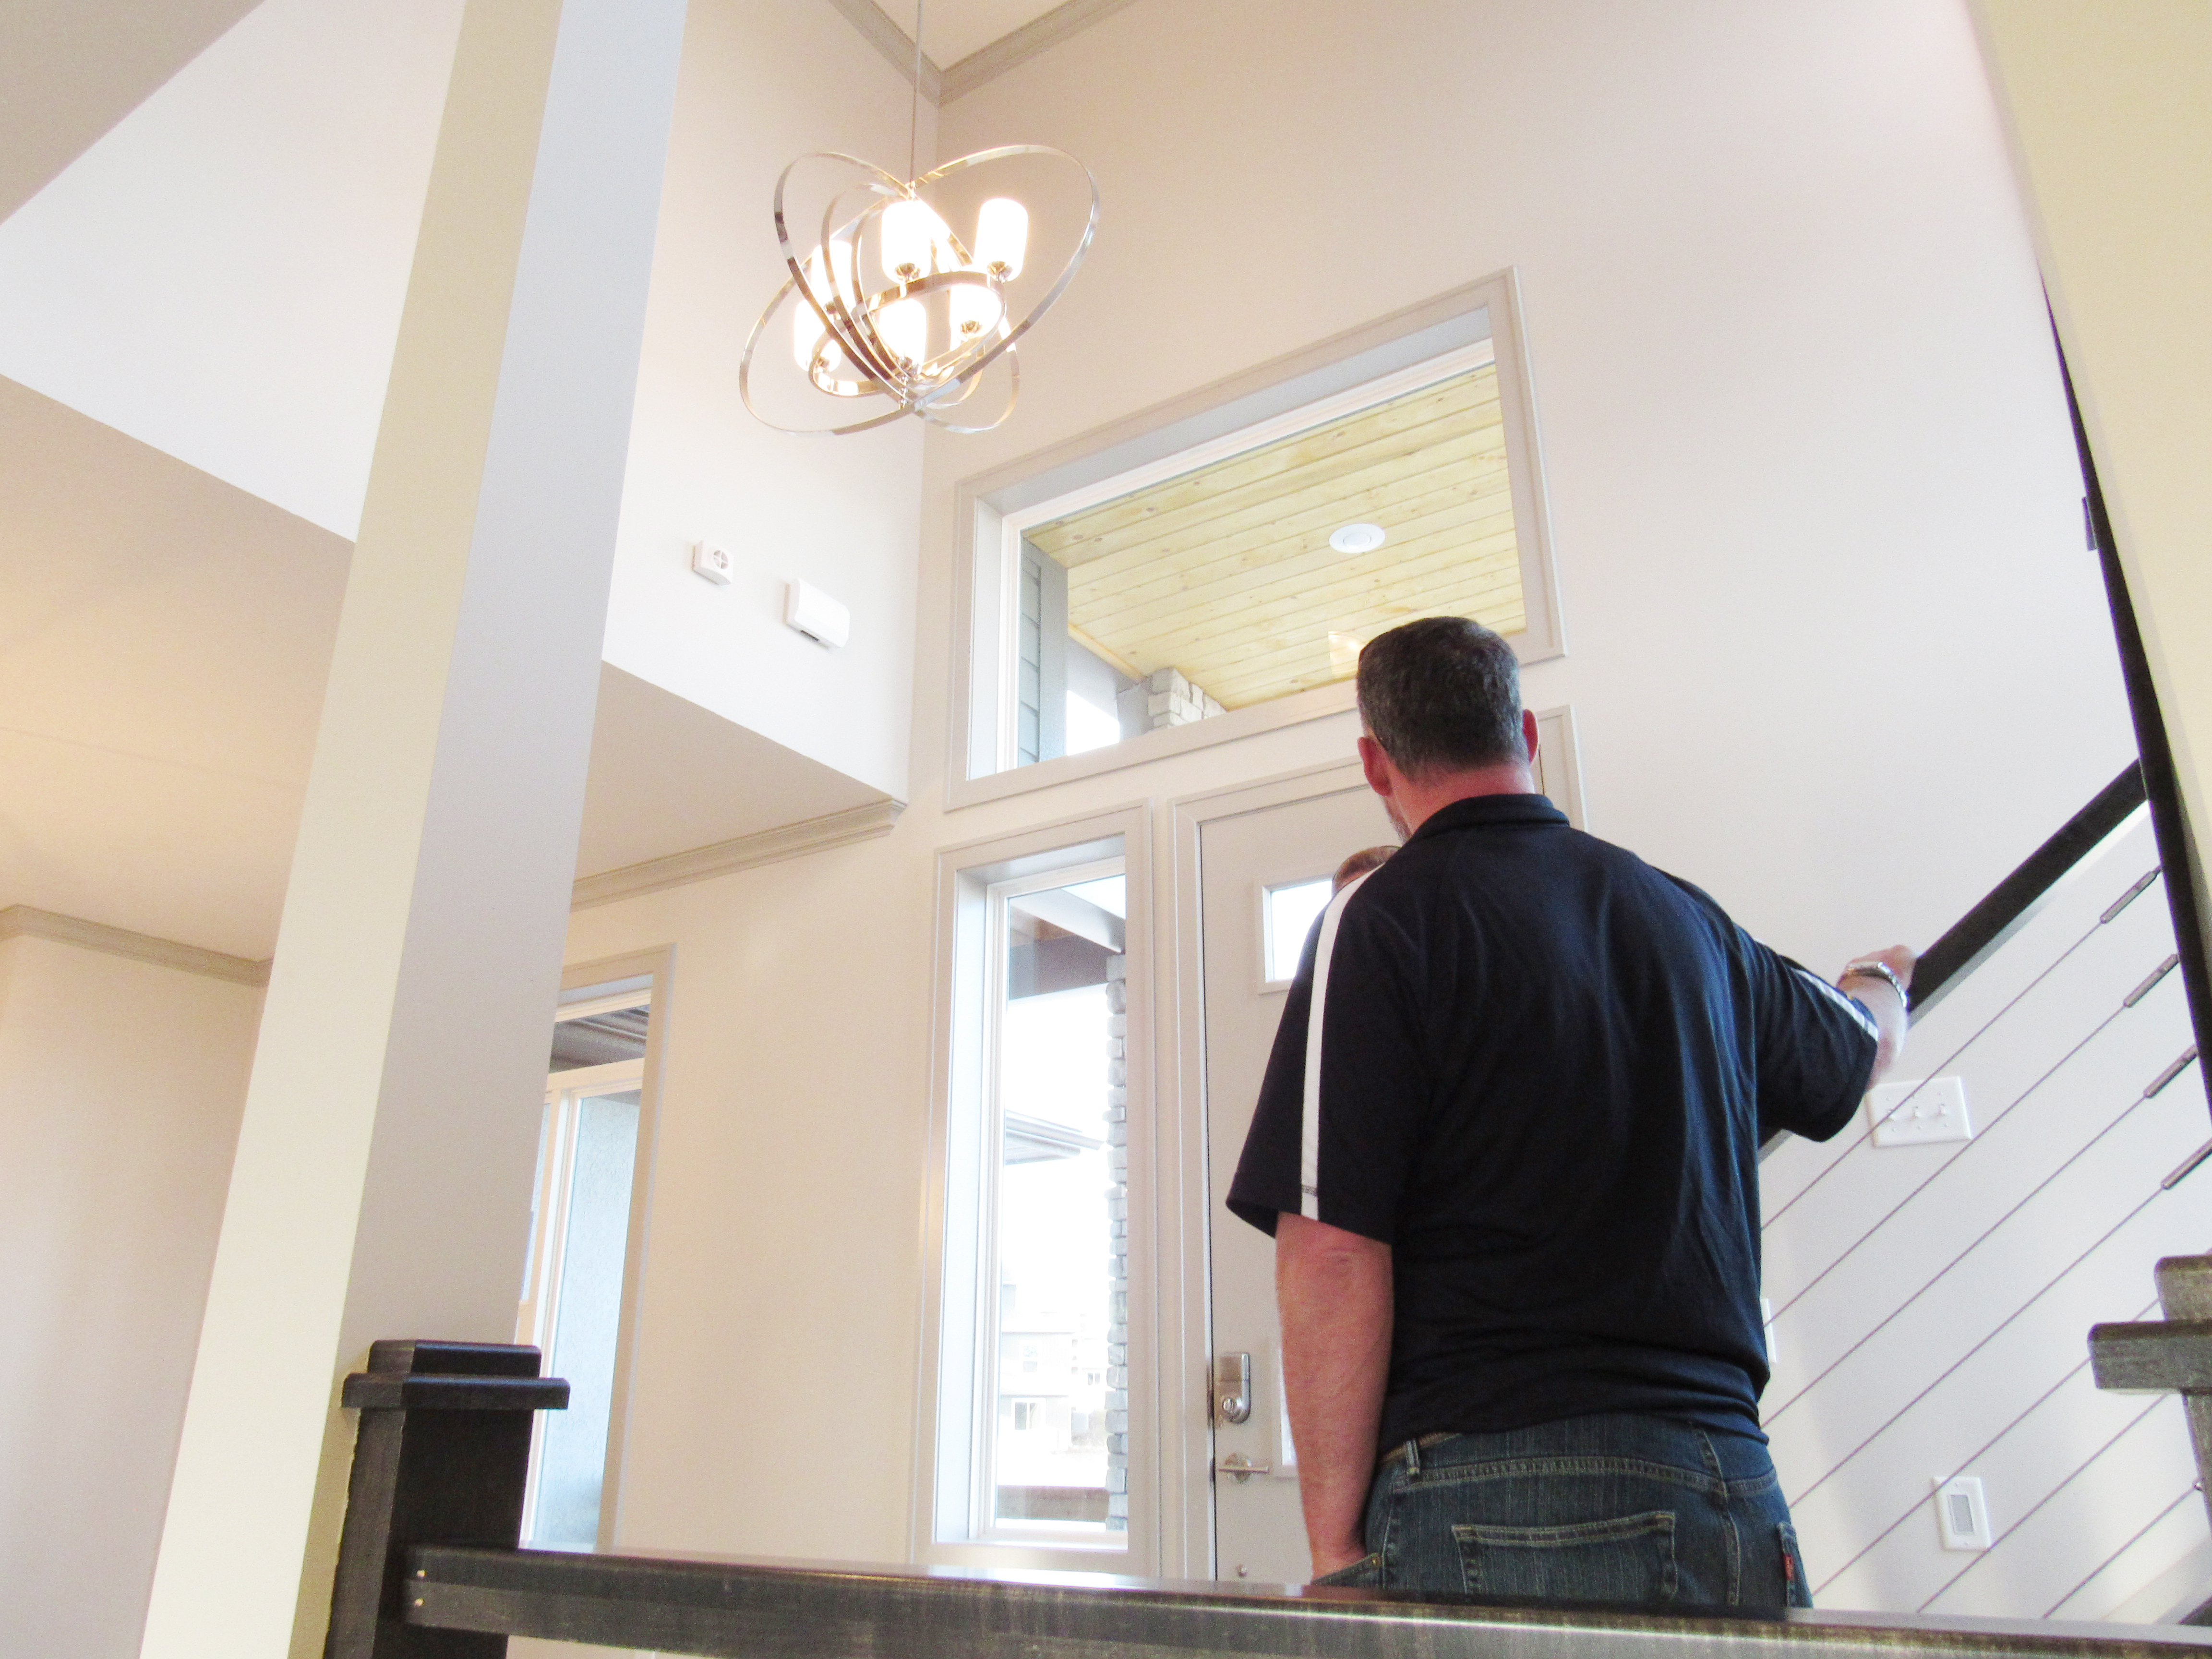 Sales Manager Mike is talking to a person, while standing in the elegant foyer of the Dream Home